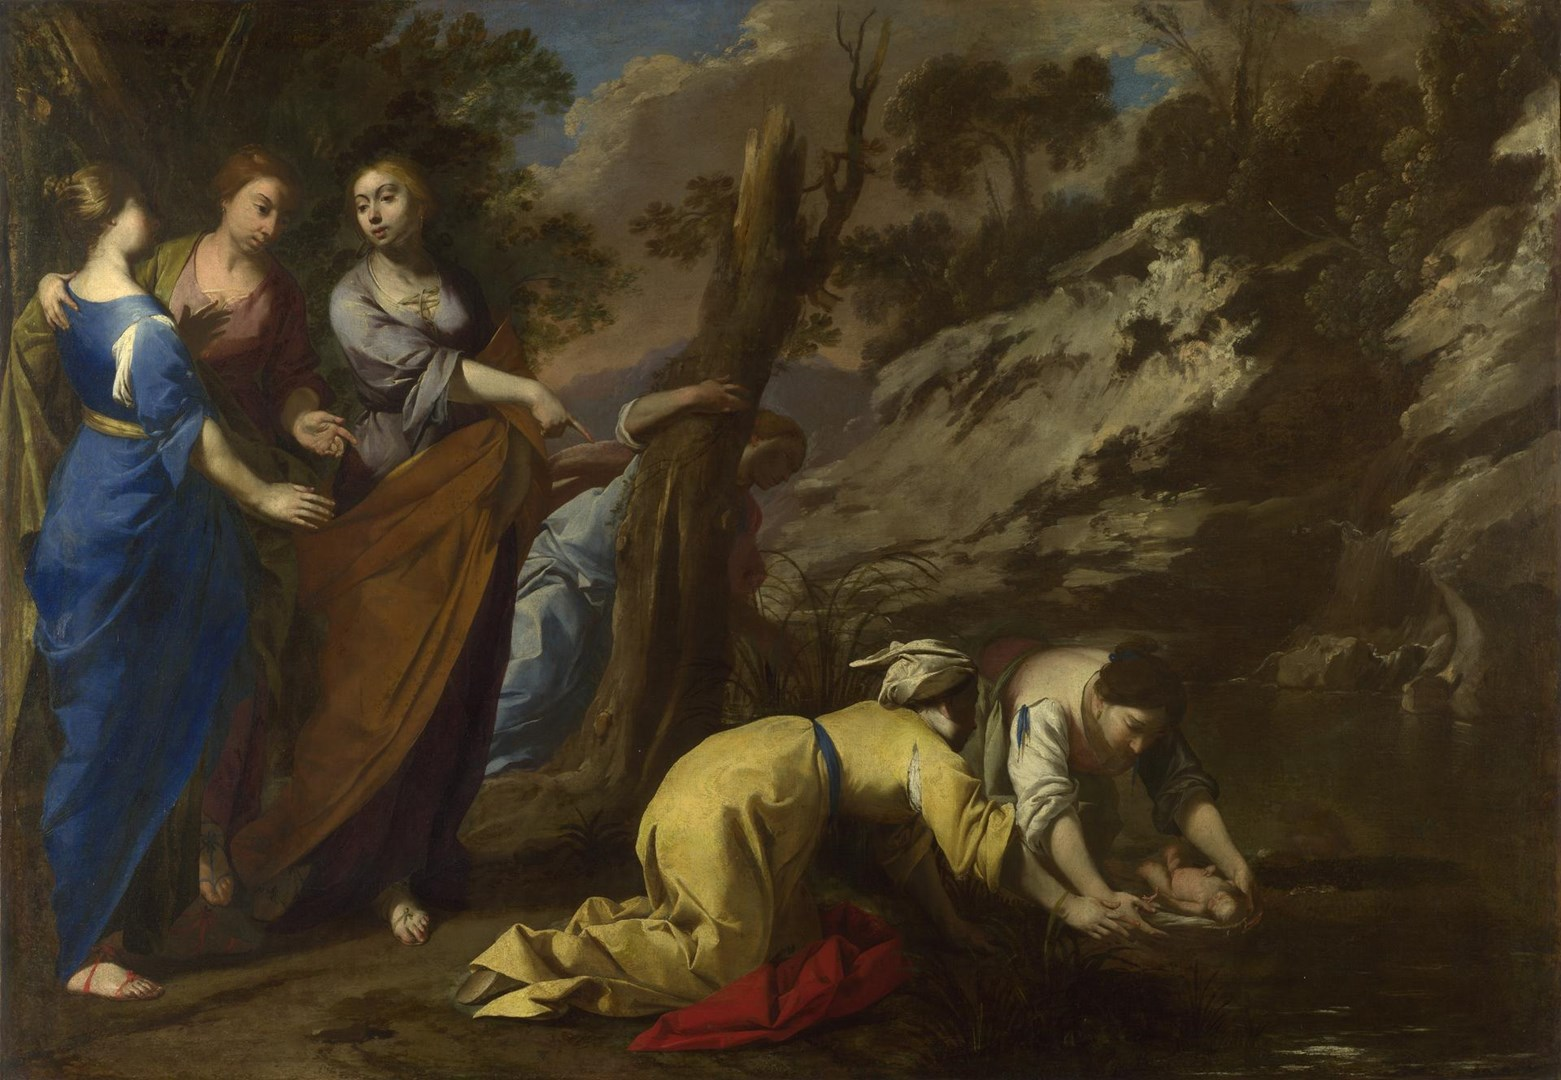 The Finding of Moses by Antonio De Bellis